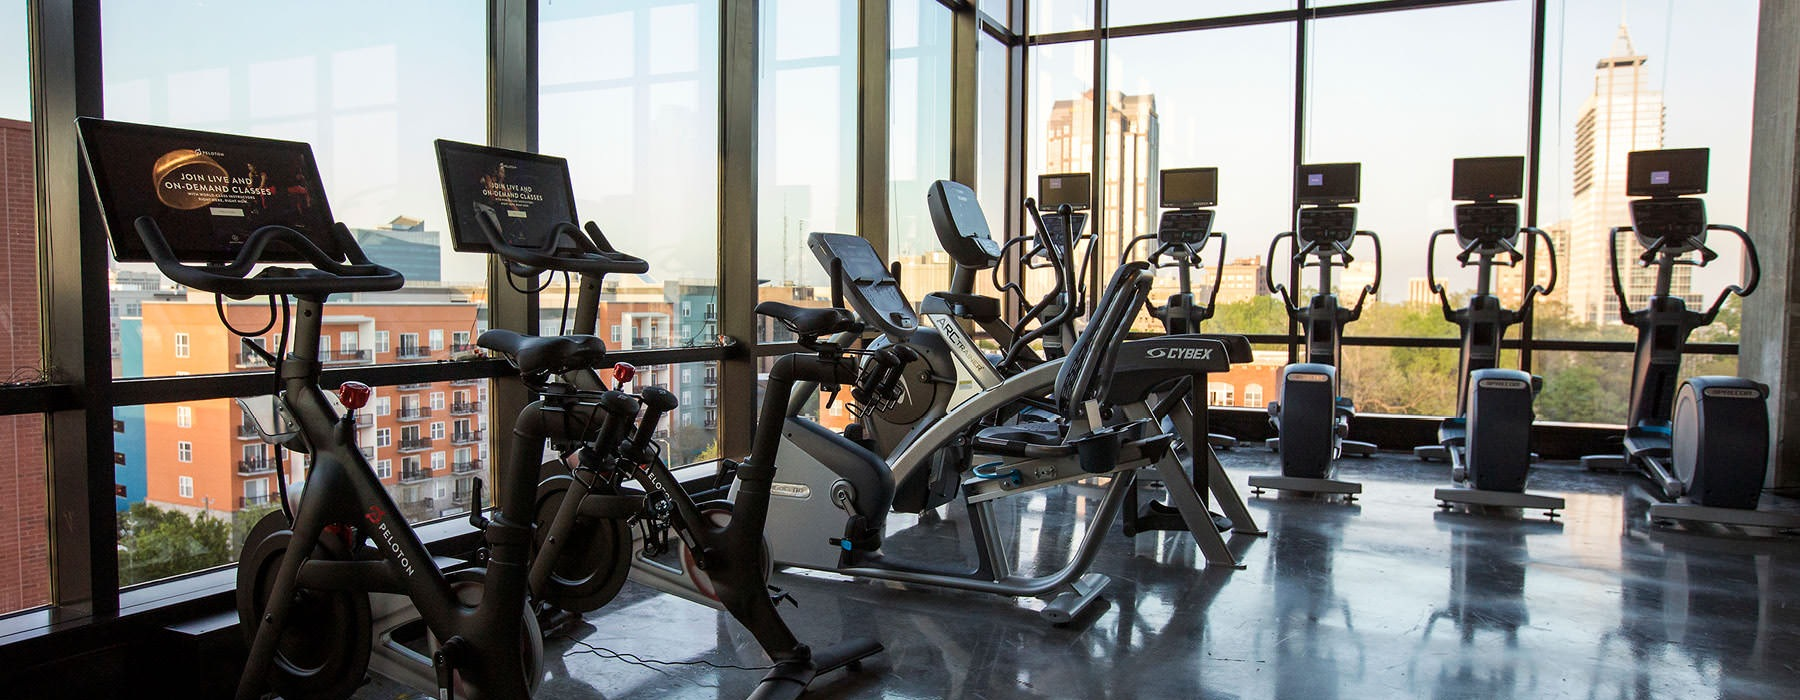 cardio equipment in fitness center with city views